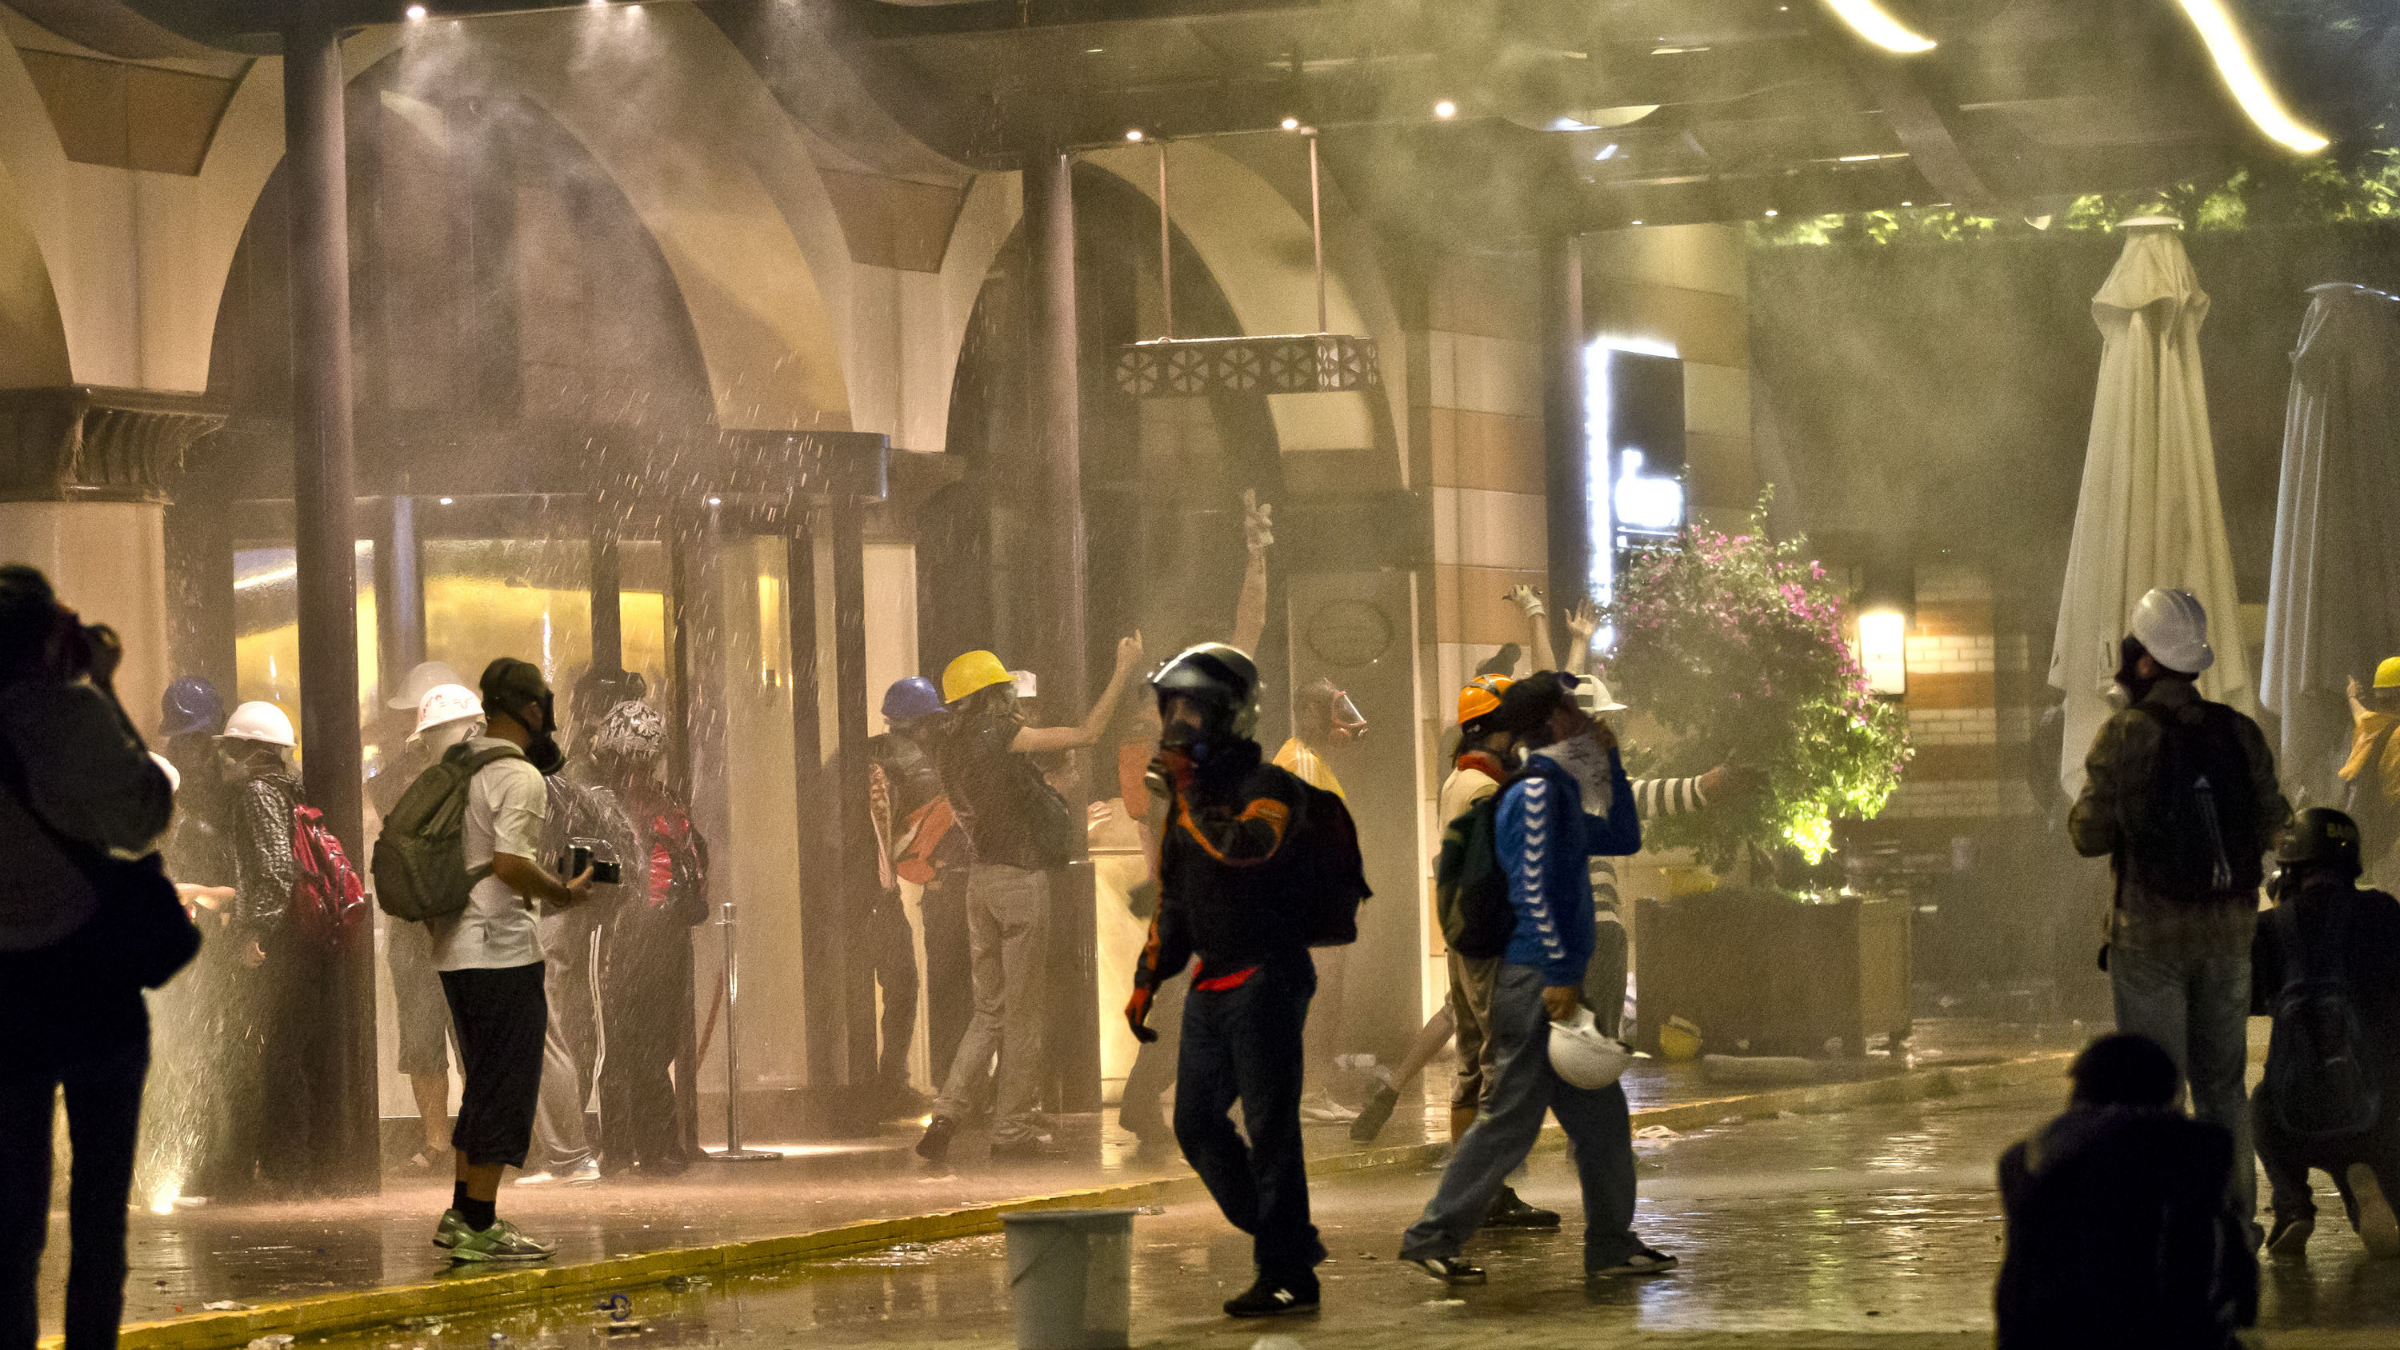 Protesters are engulfed in tear gas and sprayed by water canons at the entrance of the Divan Hotel in Istanbul, Turkey, Saturday, June 15, 2013 after being chased out of Gezi park. Protesters set up barricades and plumes of tear gas rose in Istanbul's streets into the early hours Sunday after Turkish riot police firing tear gas and water cannons cleared out the occupation of a park at the center of the strongest challenge to Prime Minister Recep Tayyip Erdogan's 10-year tenure.(AP Photo/Vadim Ghirda)